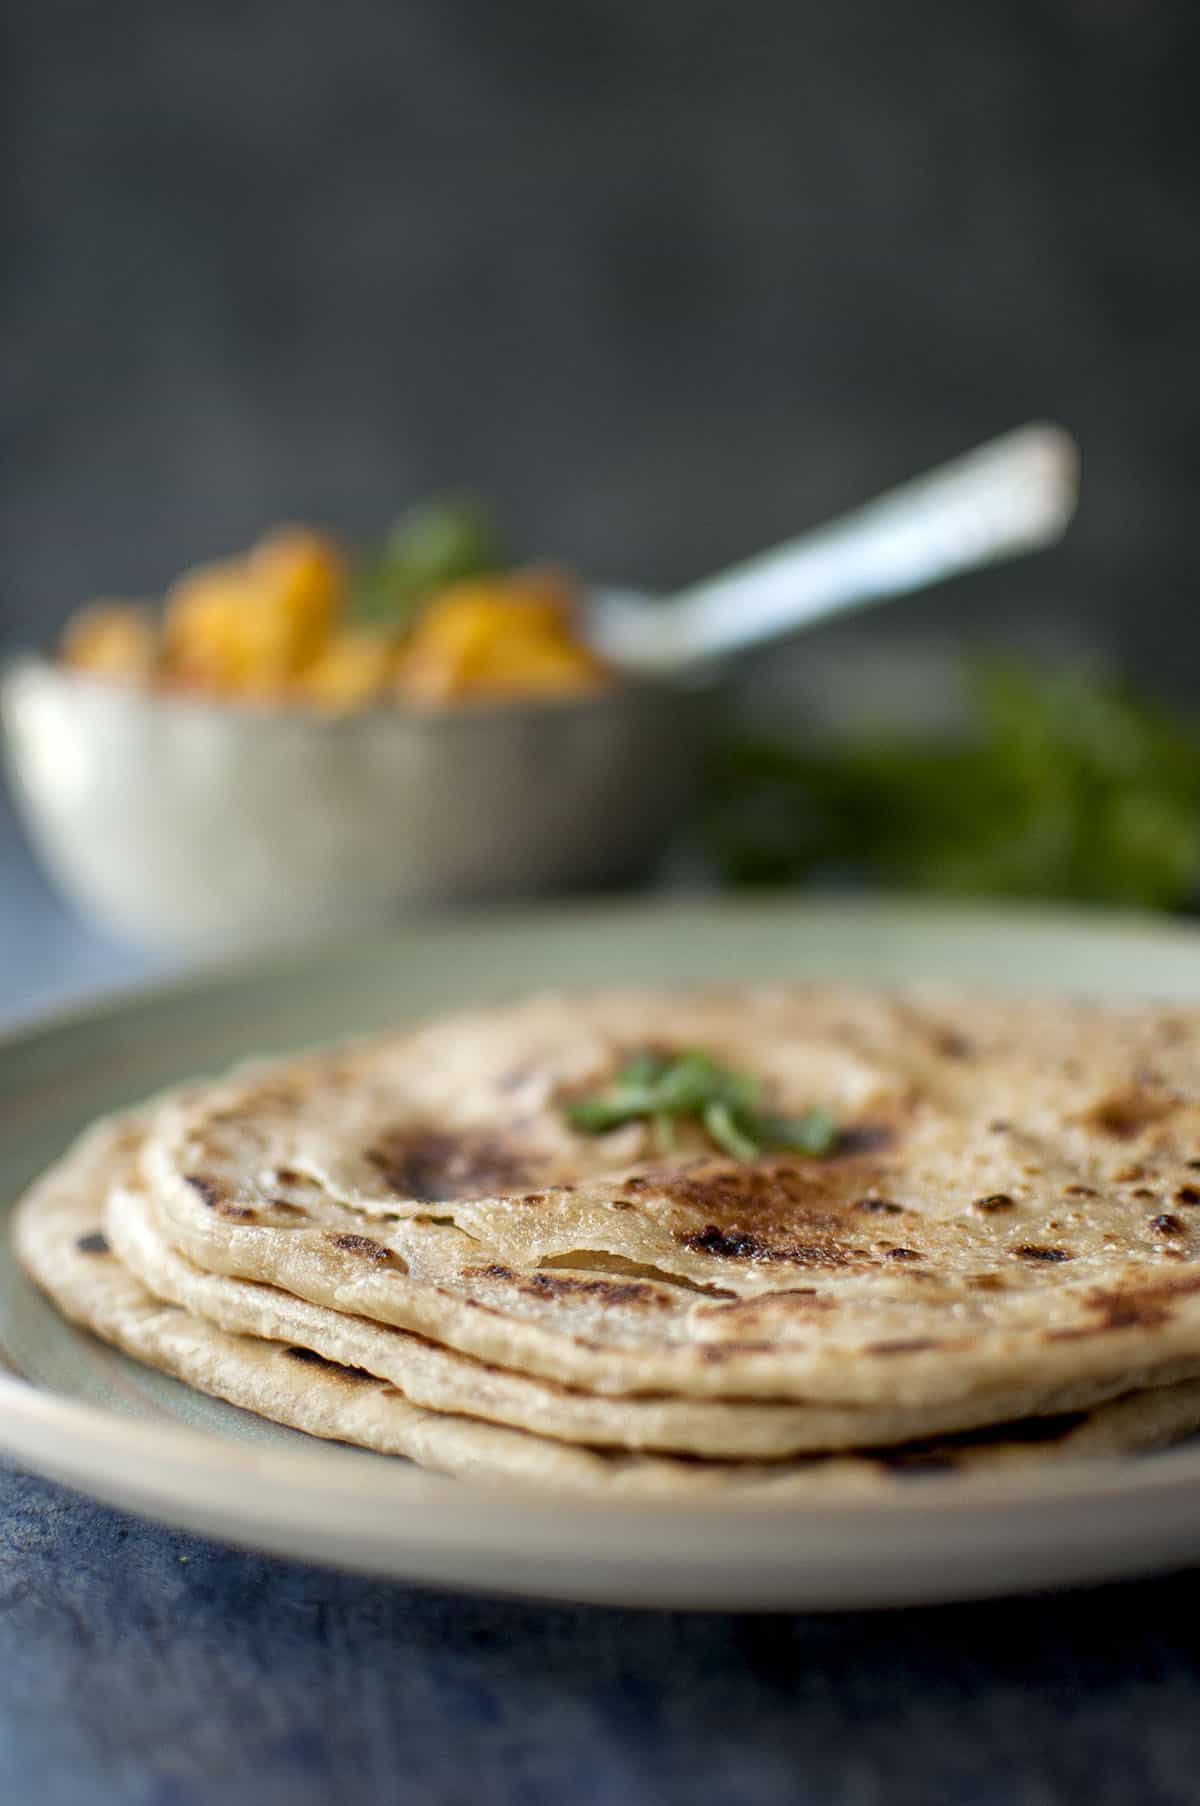 Blue plate with layered and flaky parotta